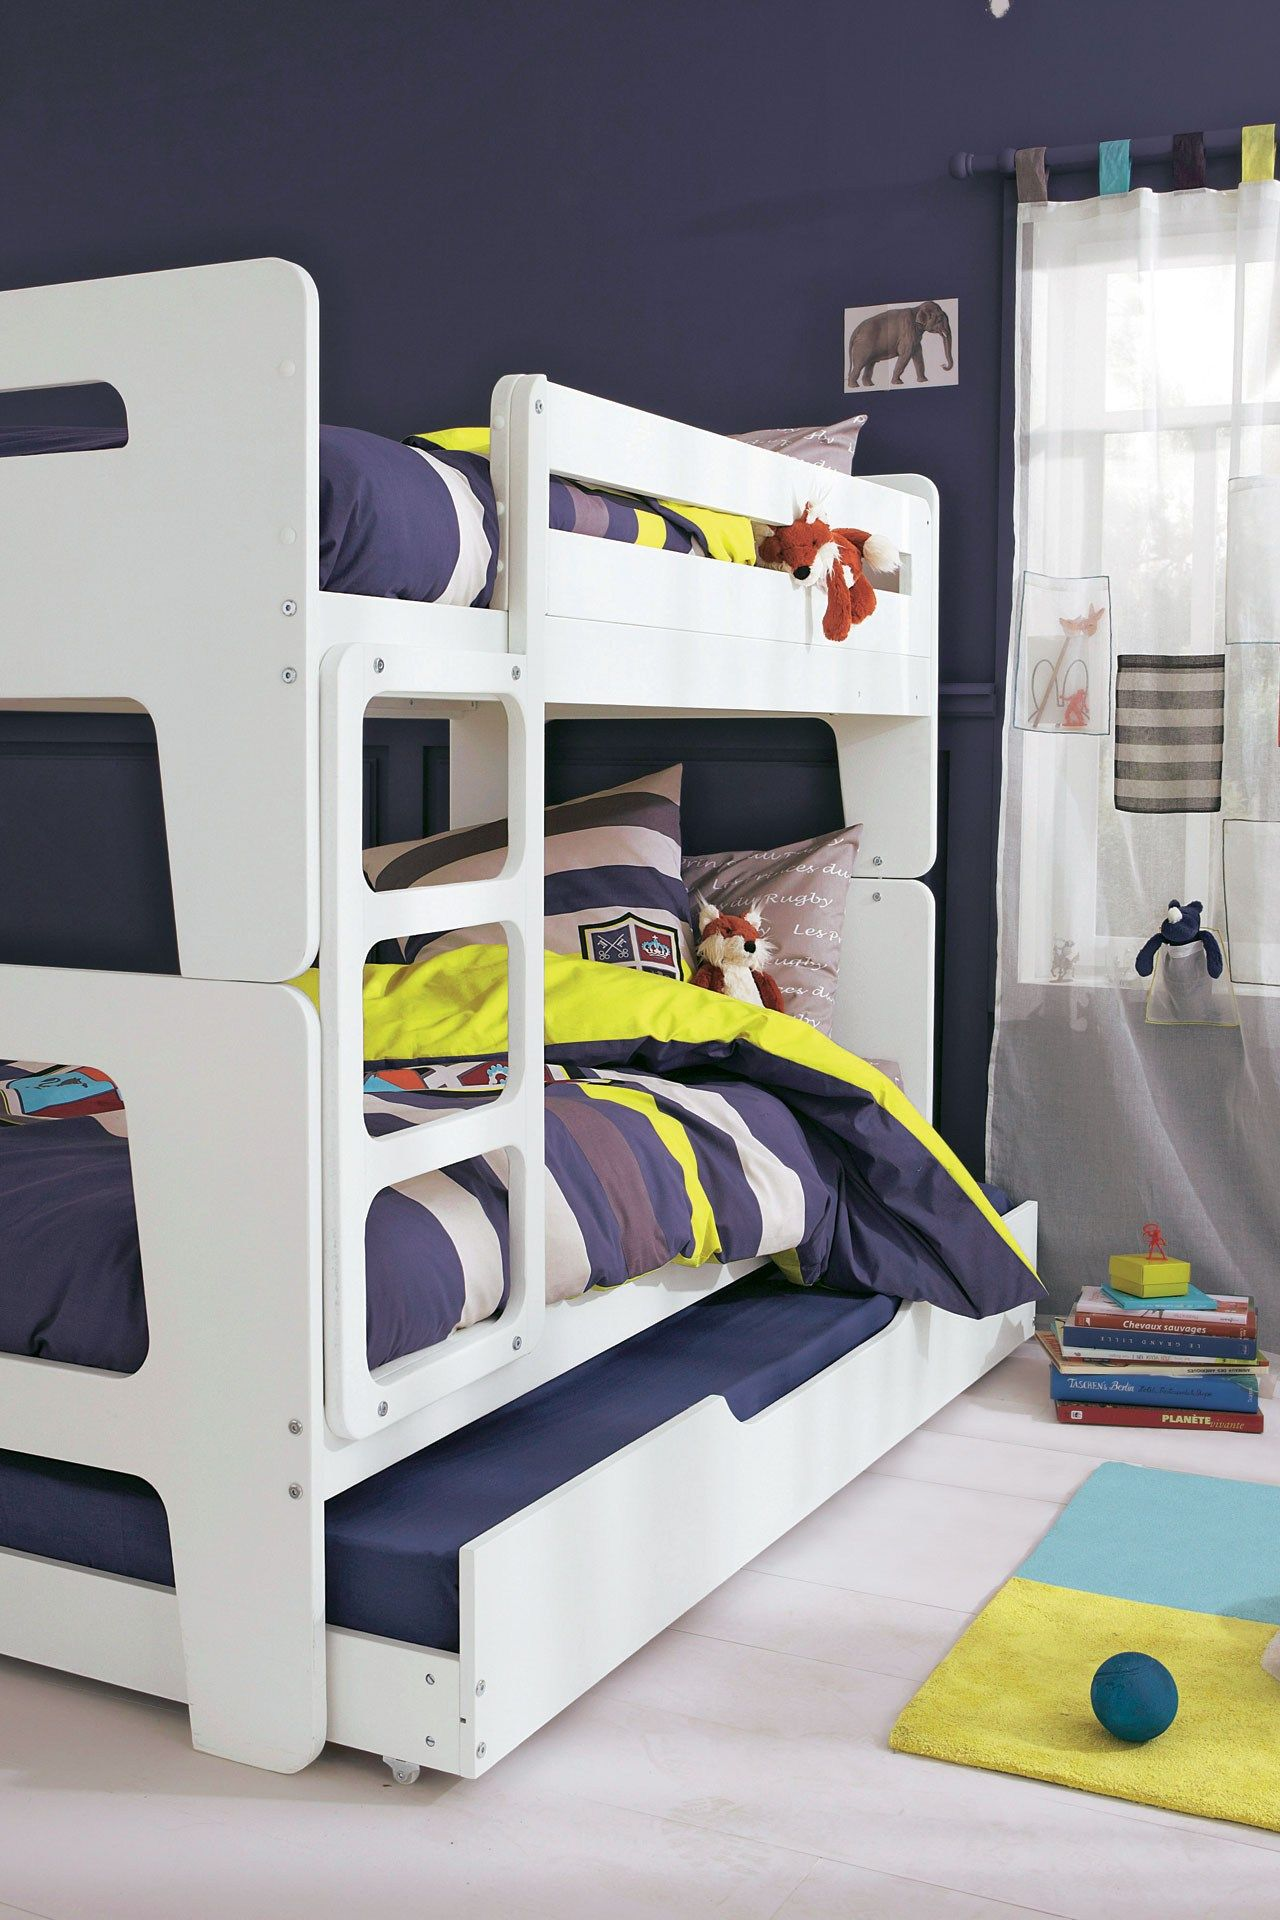 Snooze Bunk Beds Mini Me Compact Bunk Frame Single Bunk Bed Love How This Is